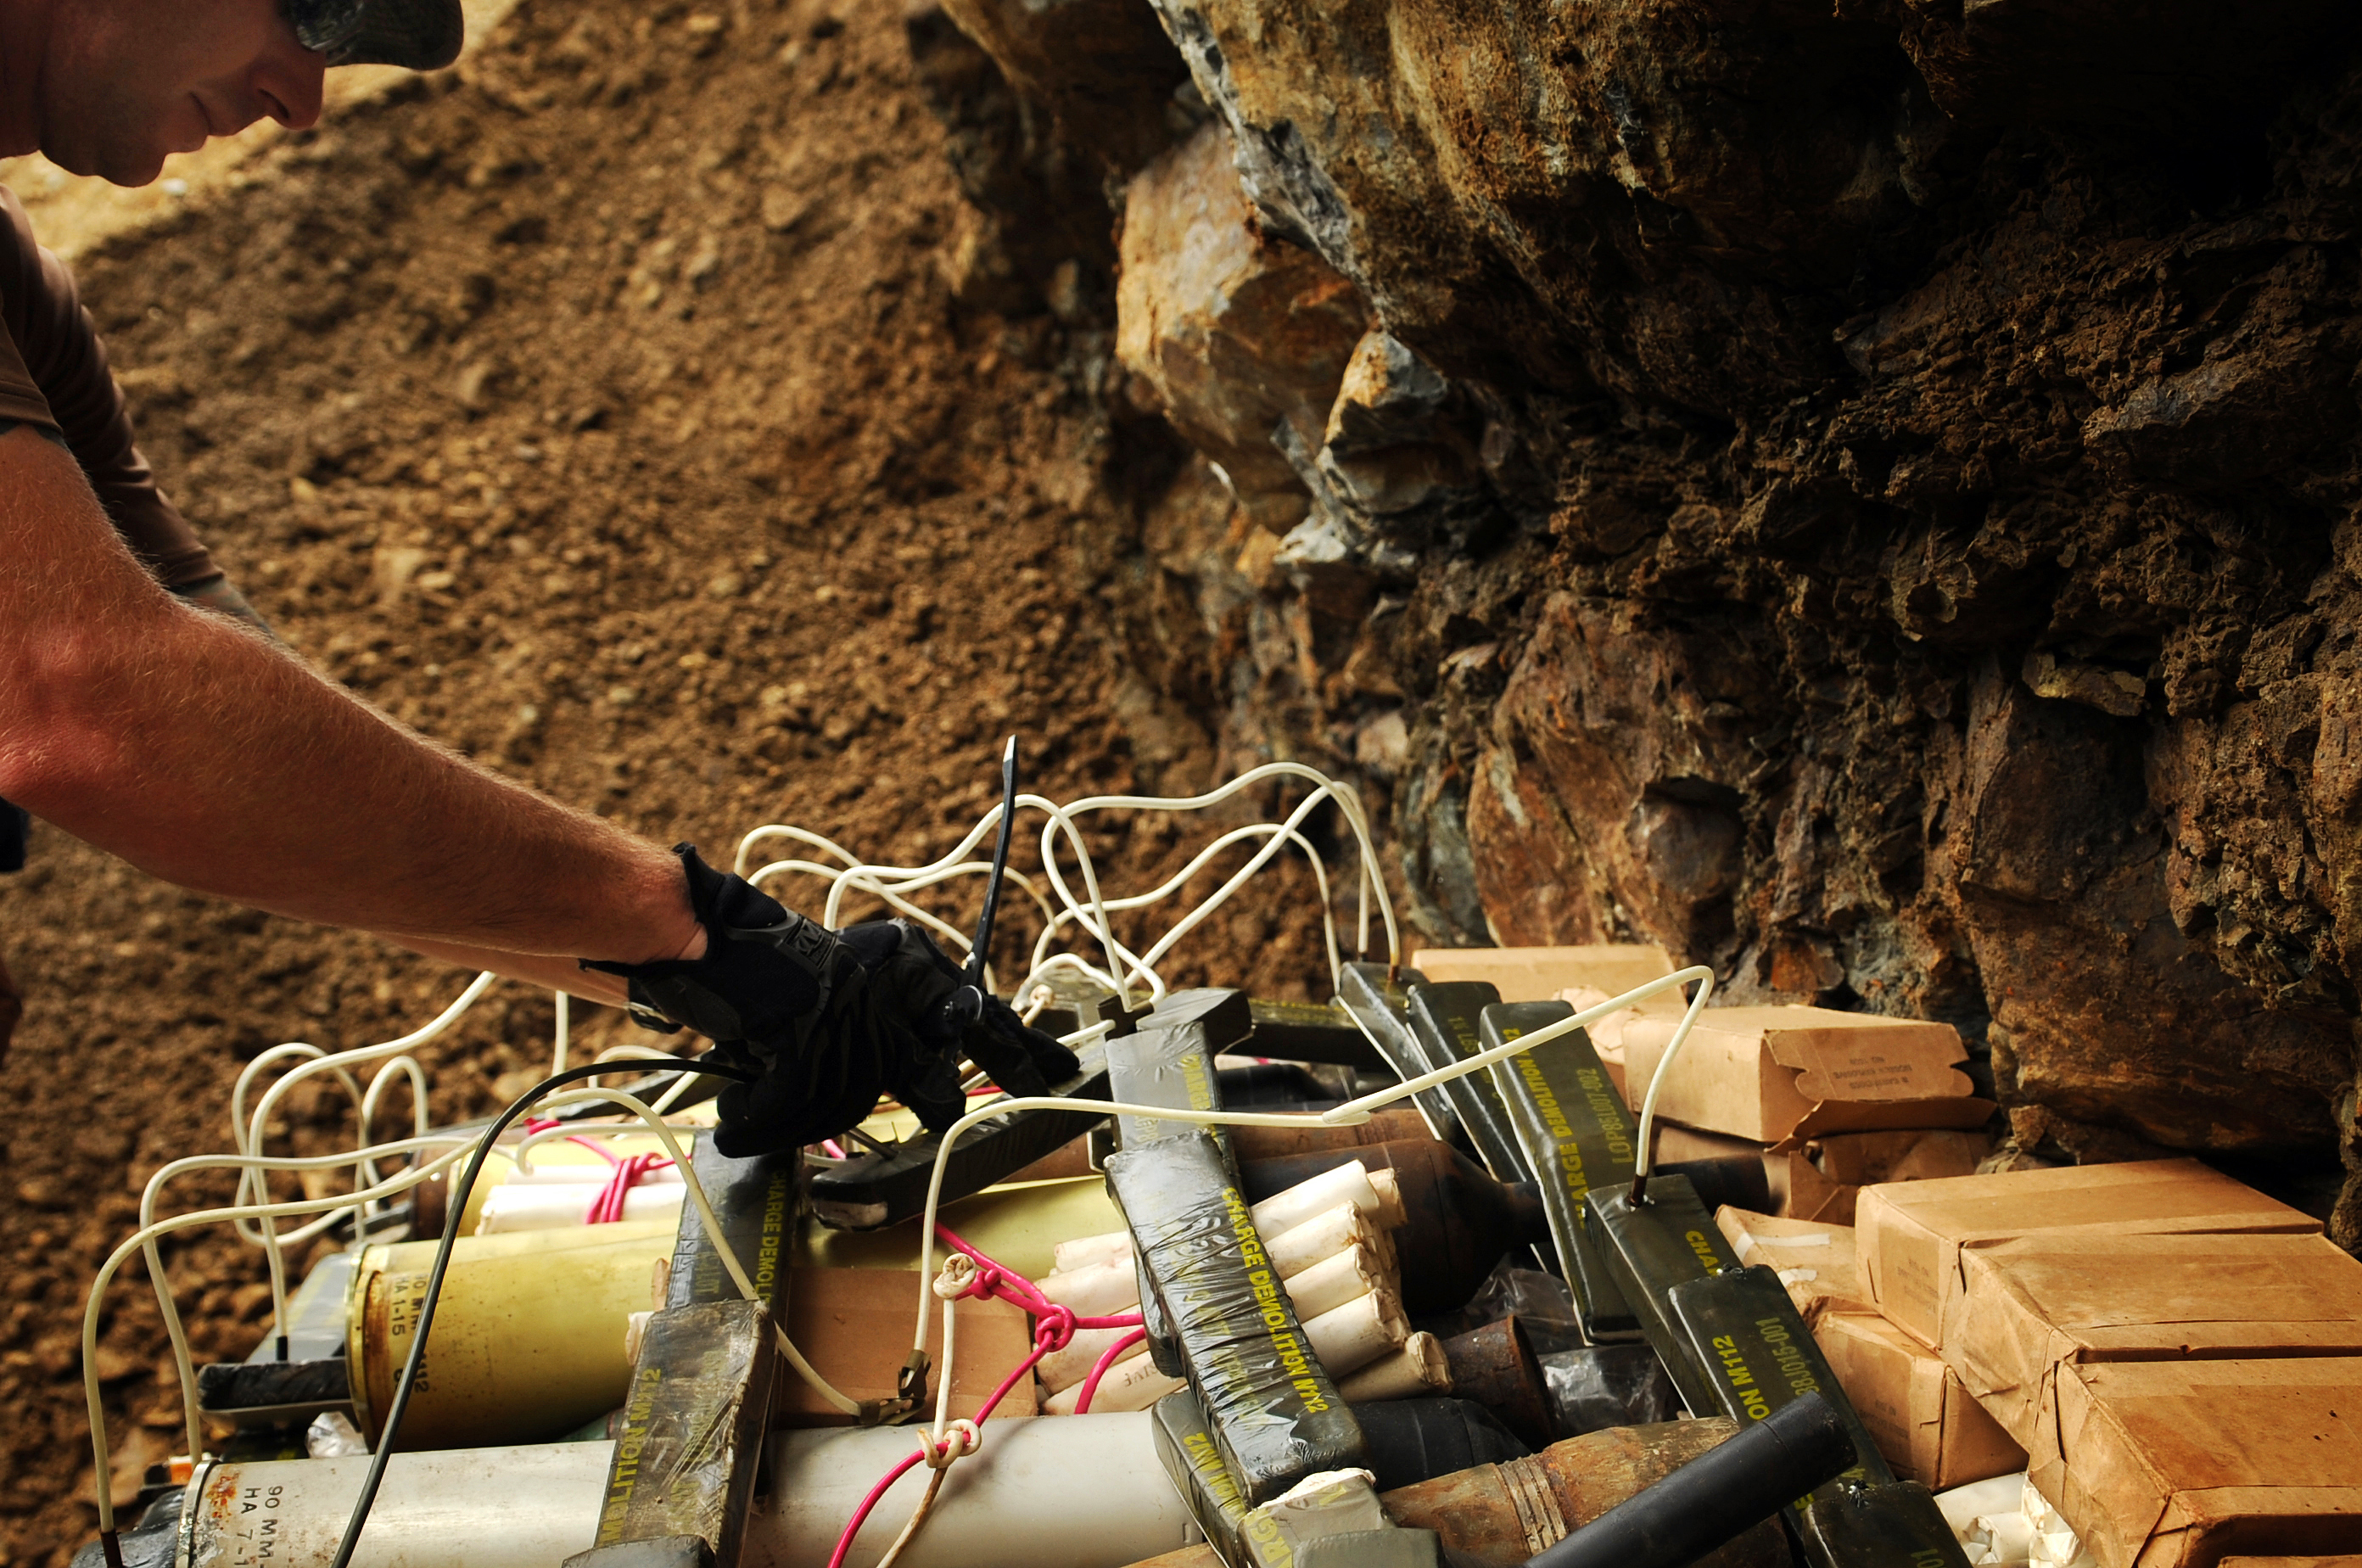 history of explosives and blasting Dyno nobel is a leading supplier of industrial explosives and blasting services to the mining,  history our services  practical innovations.